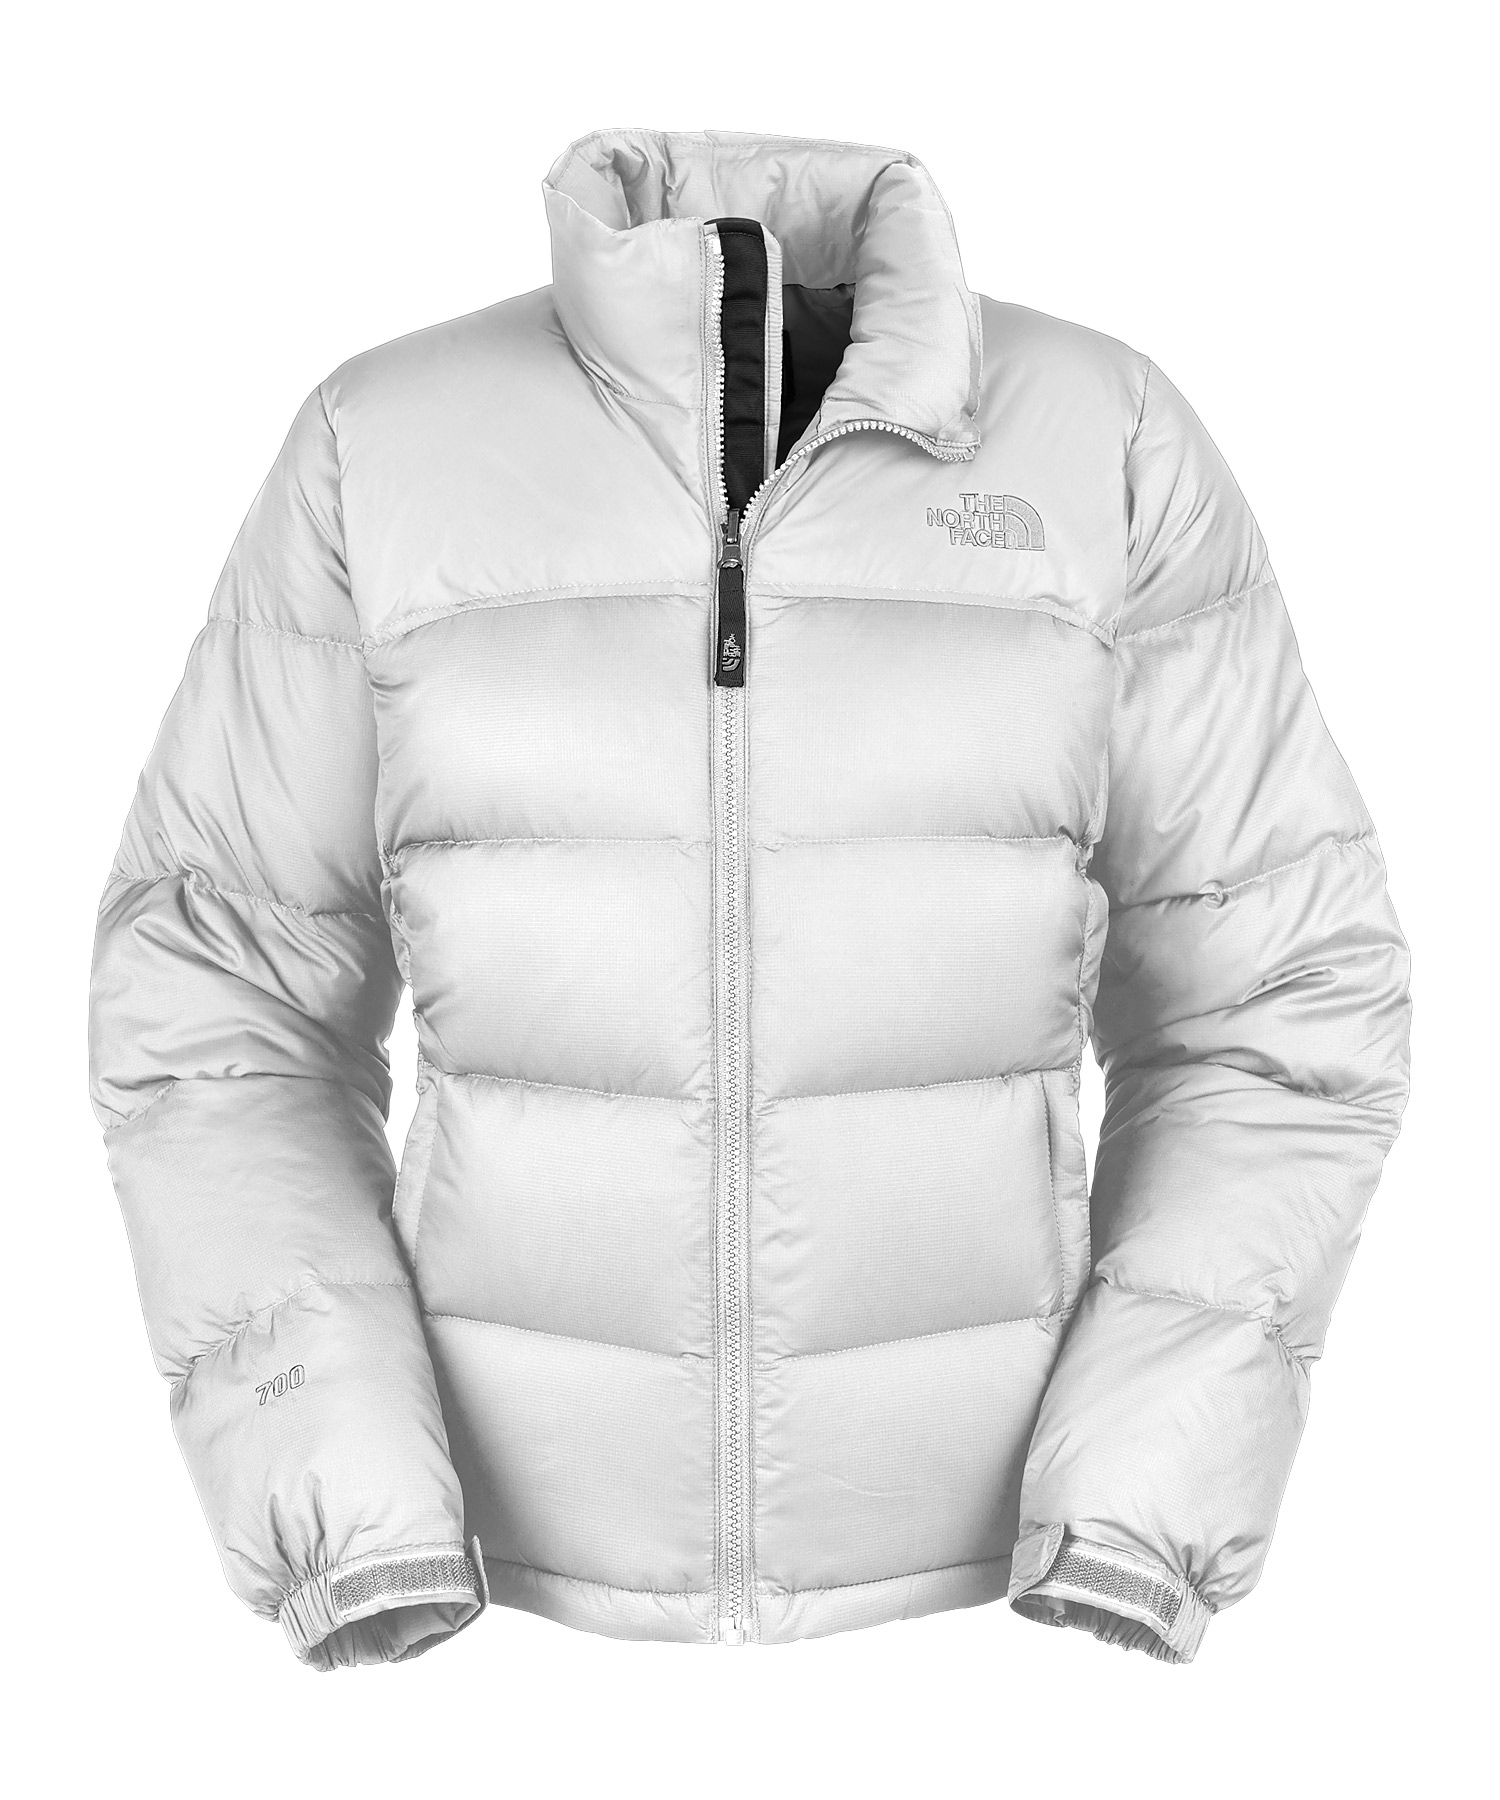 The North Face Nuptse Down Jacket Women s at NorwaySports.com Archive d81afec67